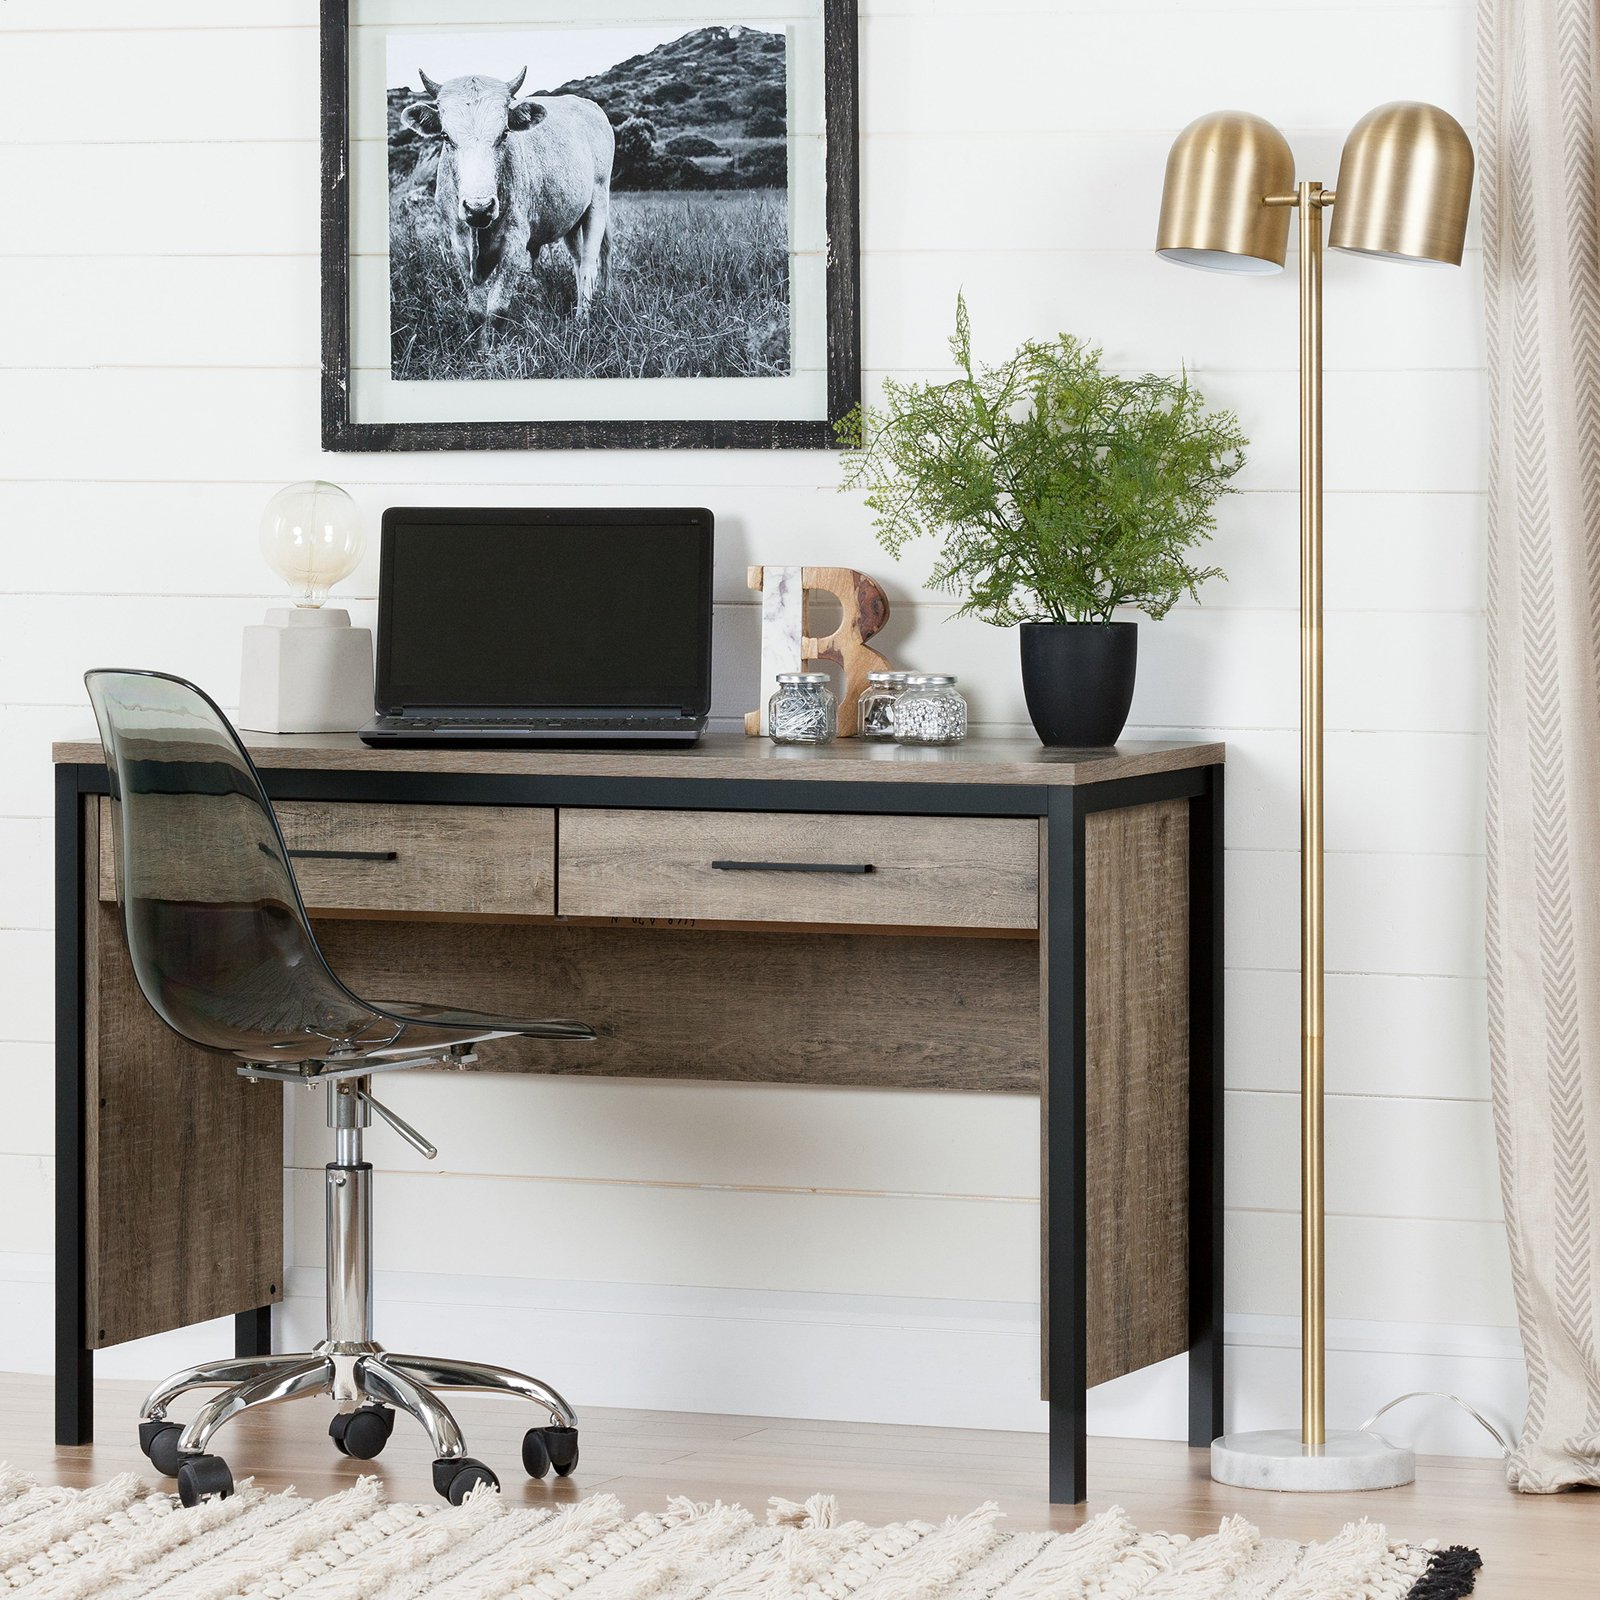 South Shore Munich Desk with Drawers, Weathered Oak and Matte Black